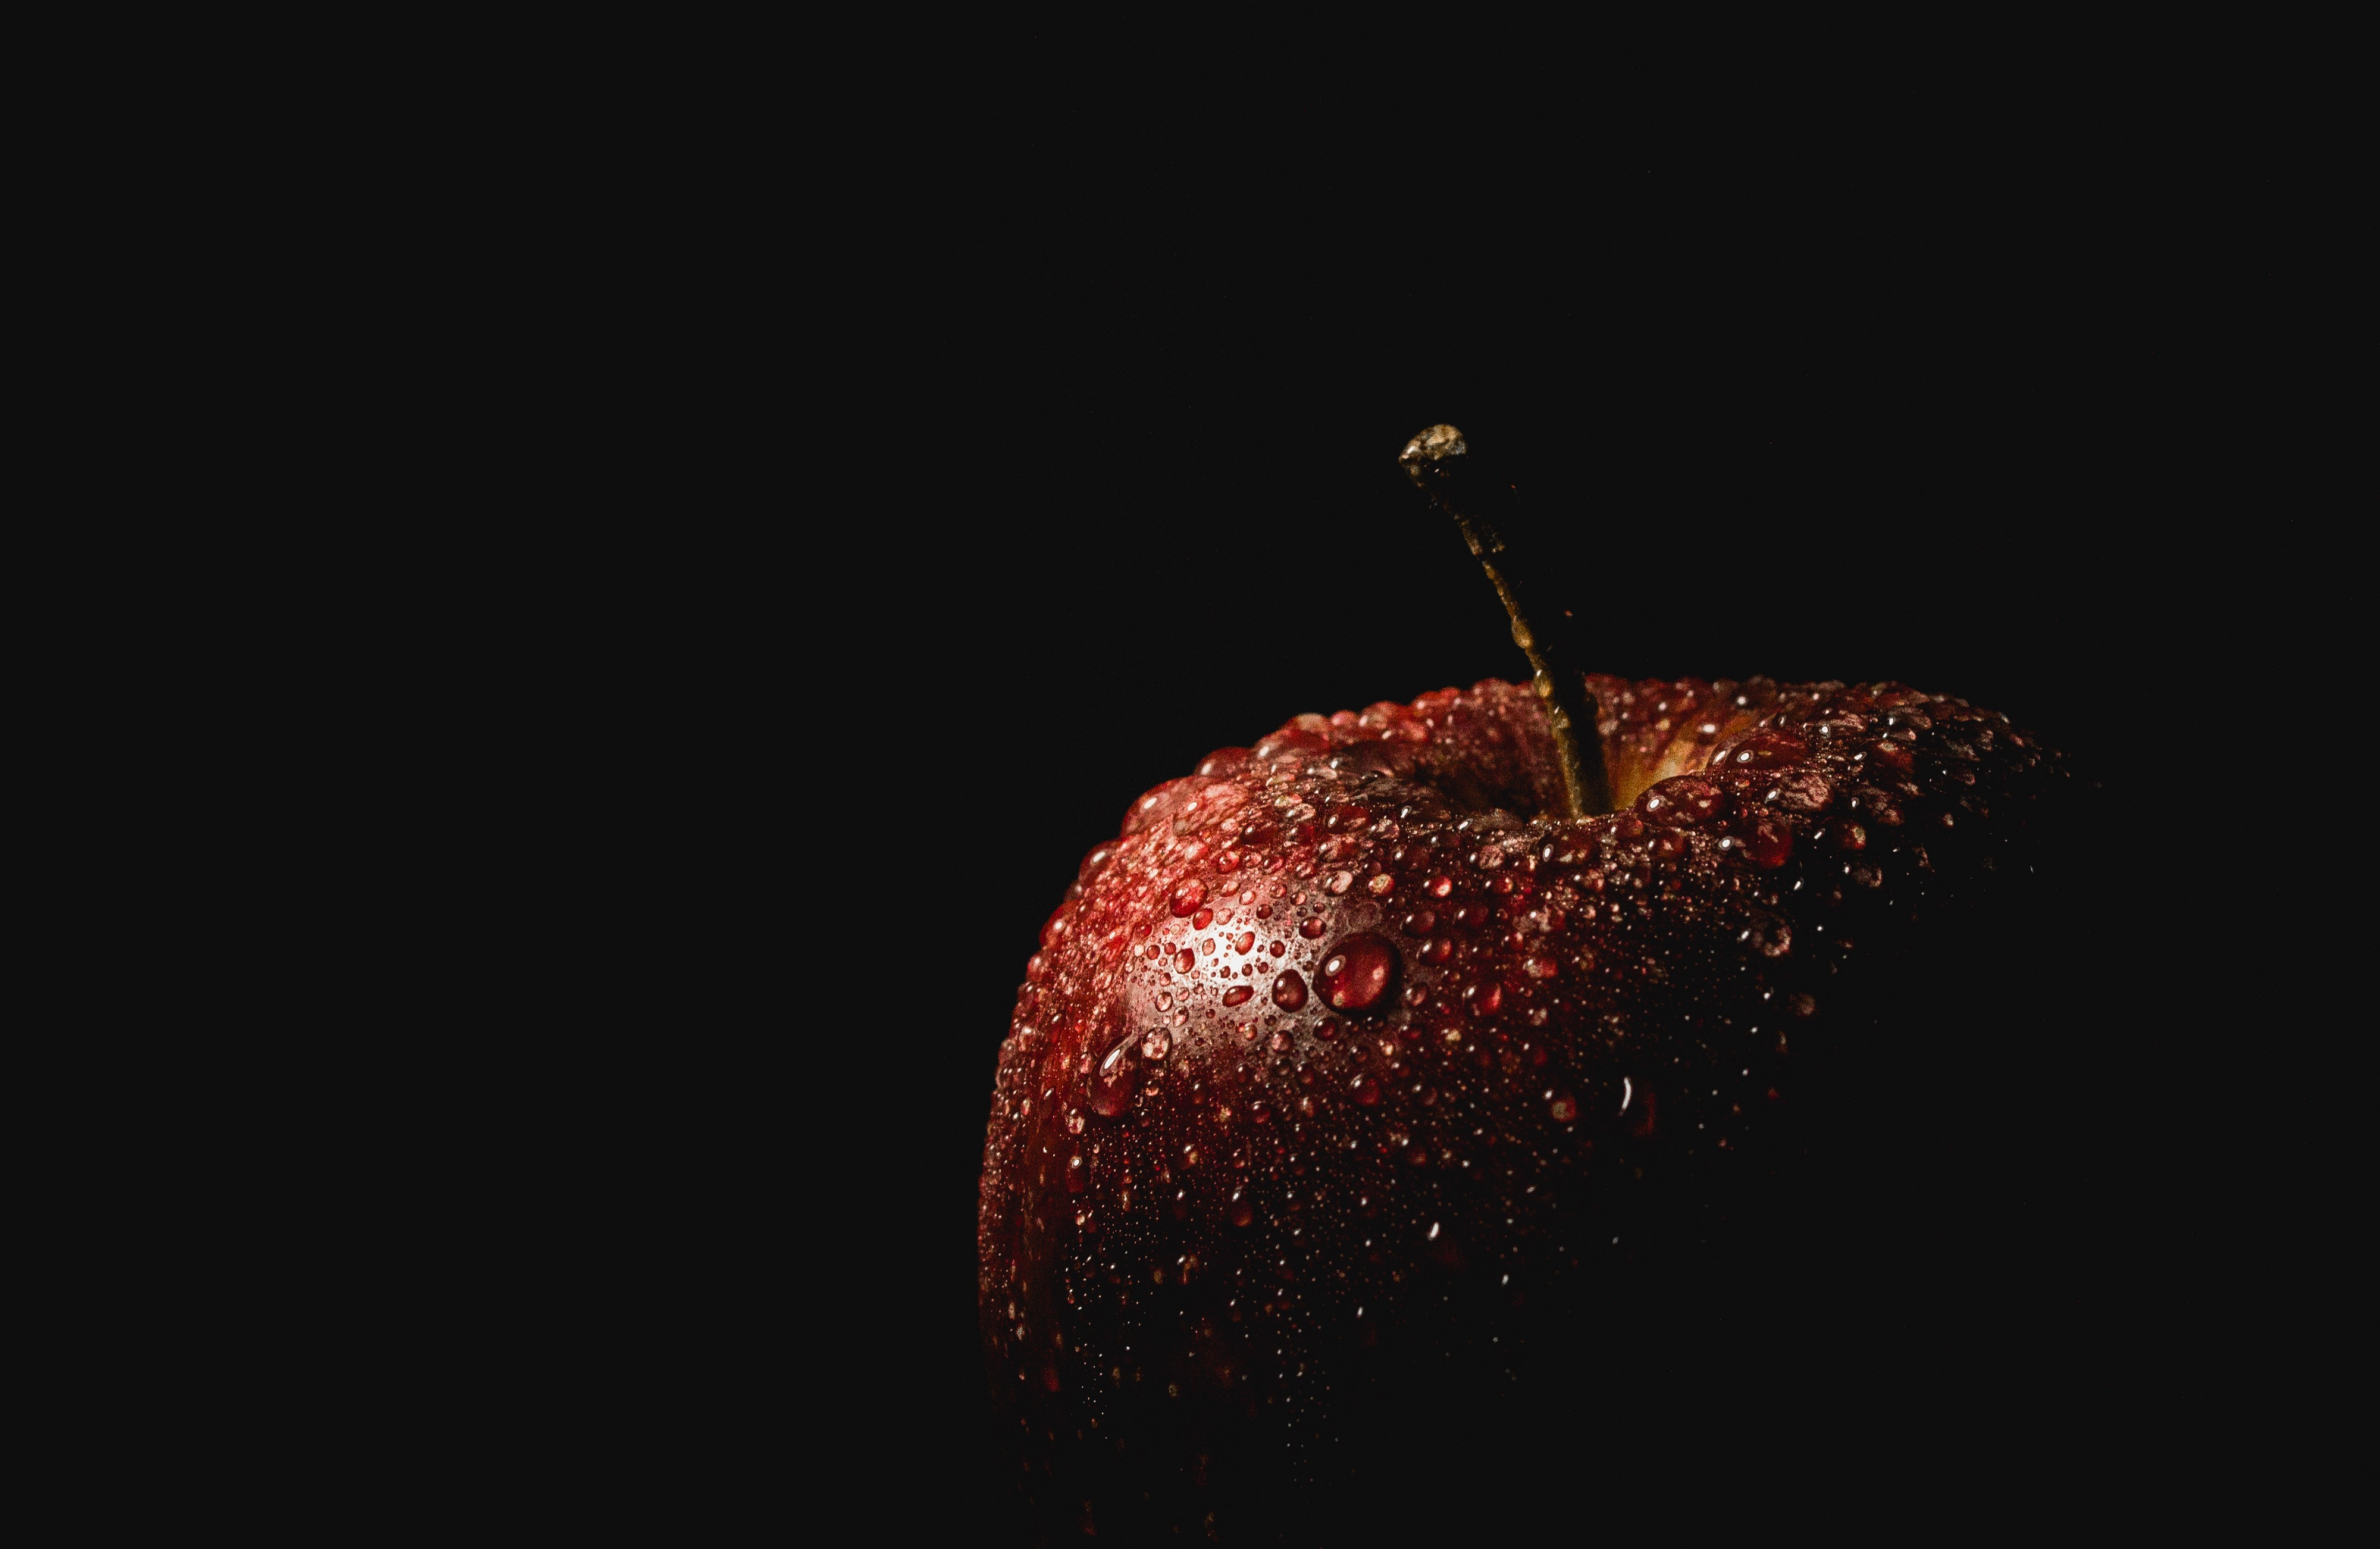 Photo of a red apple with a stem and drops of water on it's skin. Photo by Carlos Alberto Gómez Iñiguez.